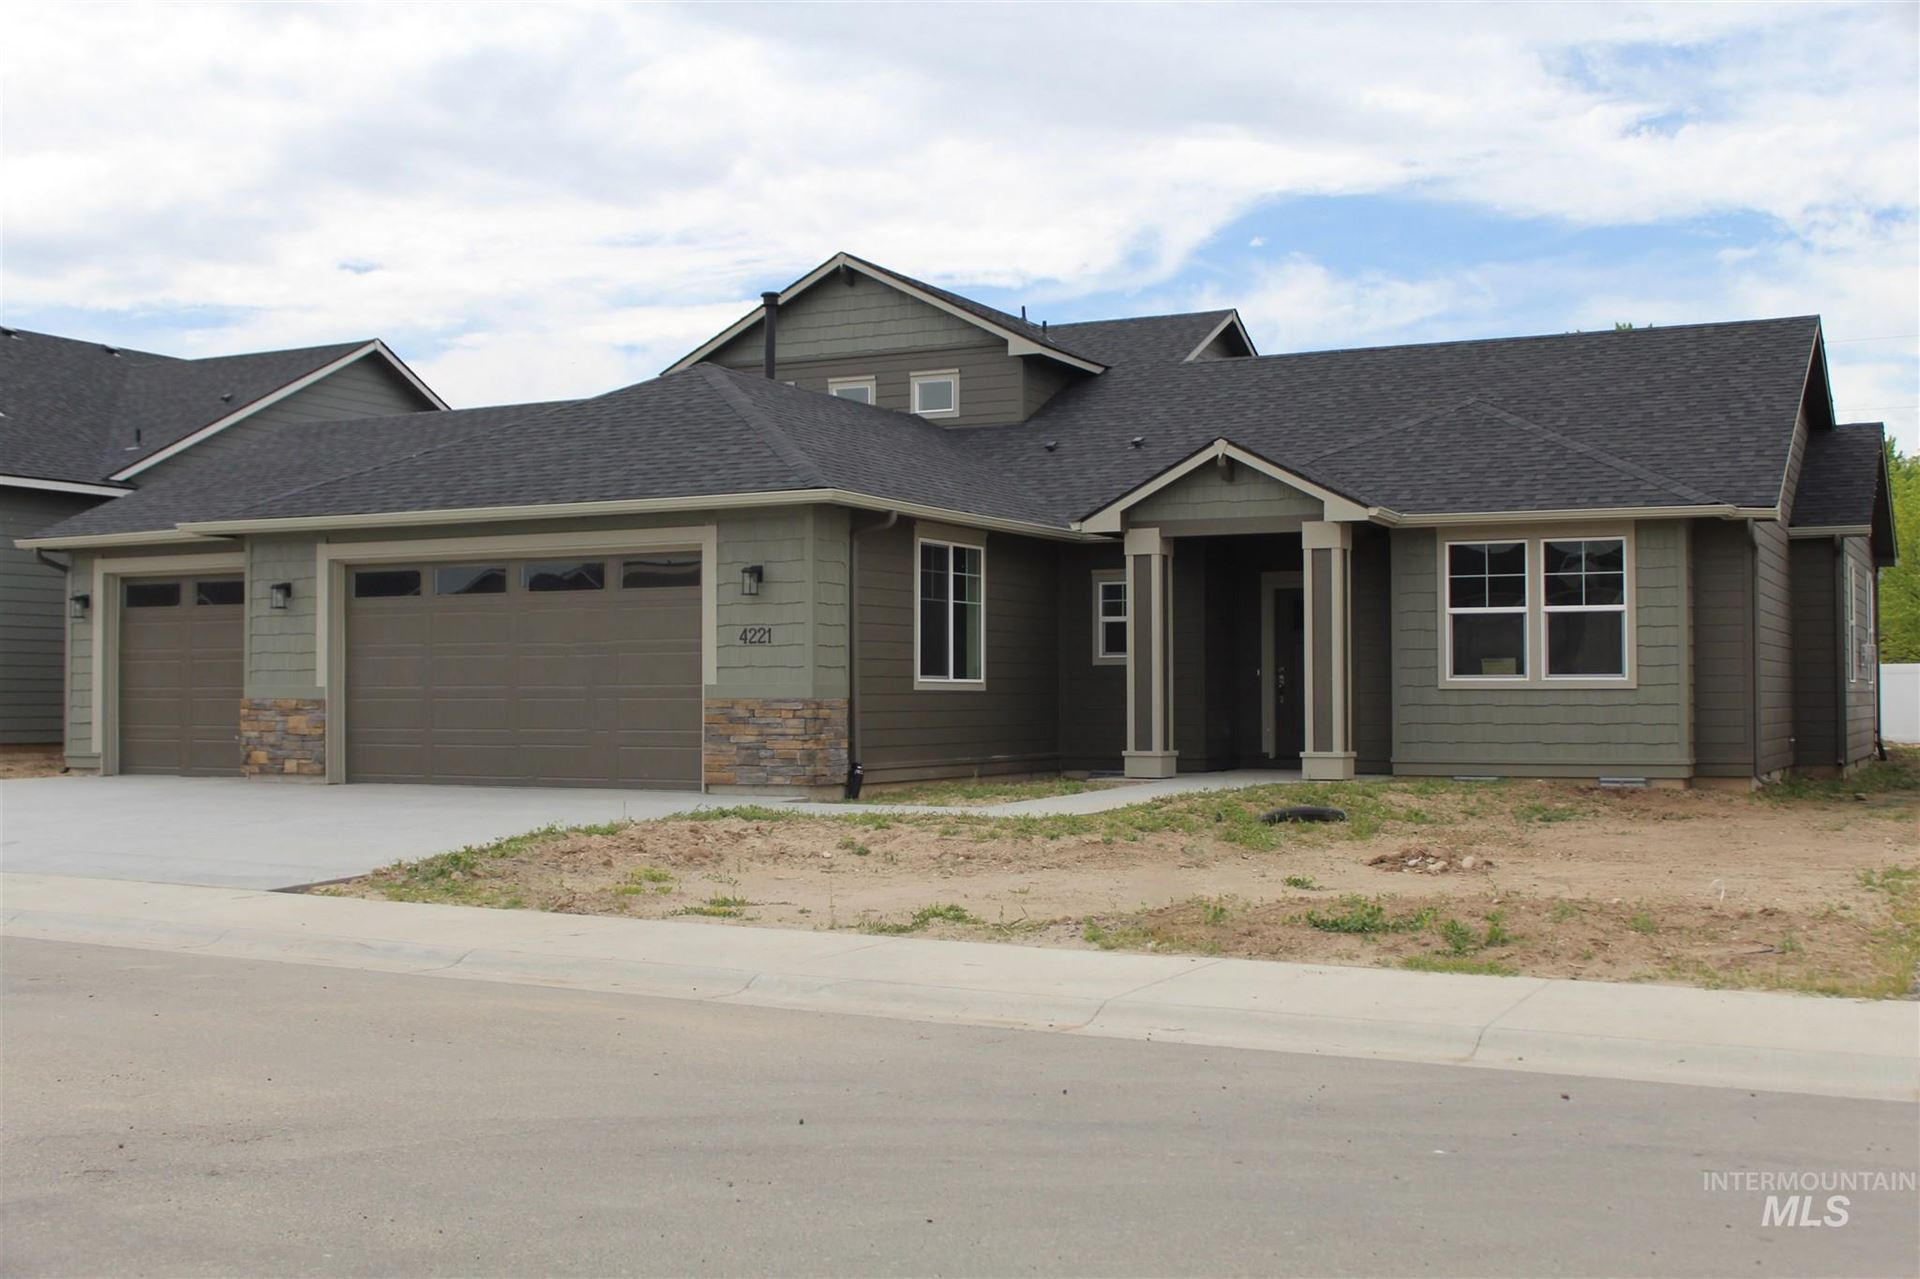 4221 Whistling Heights Way, Nampa, ID 83687 - MLS#: 98768748